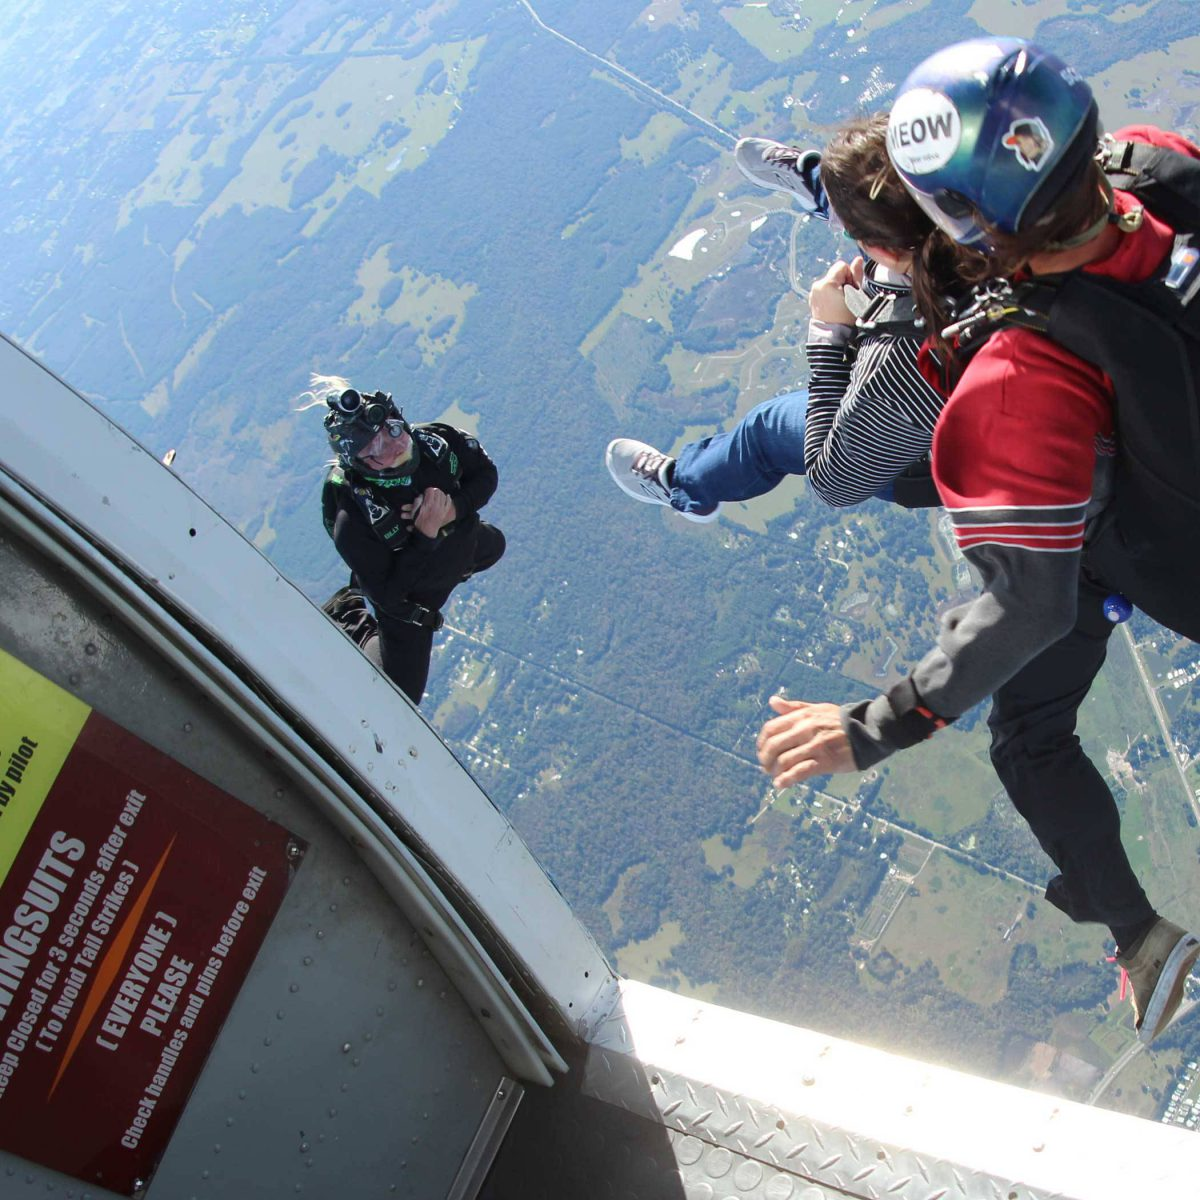 Female skydiver and instructor leaping from Skydive City Z-Hills airplane.